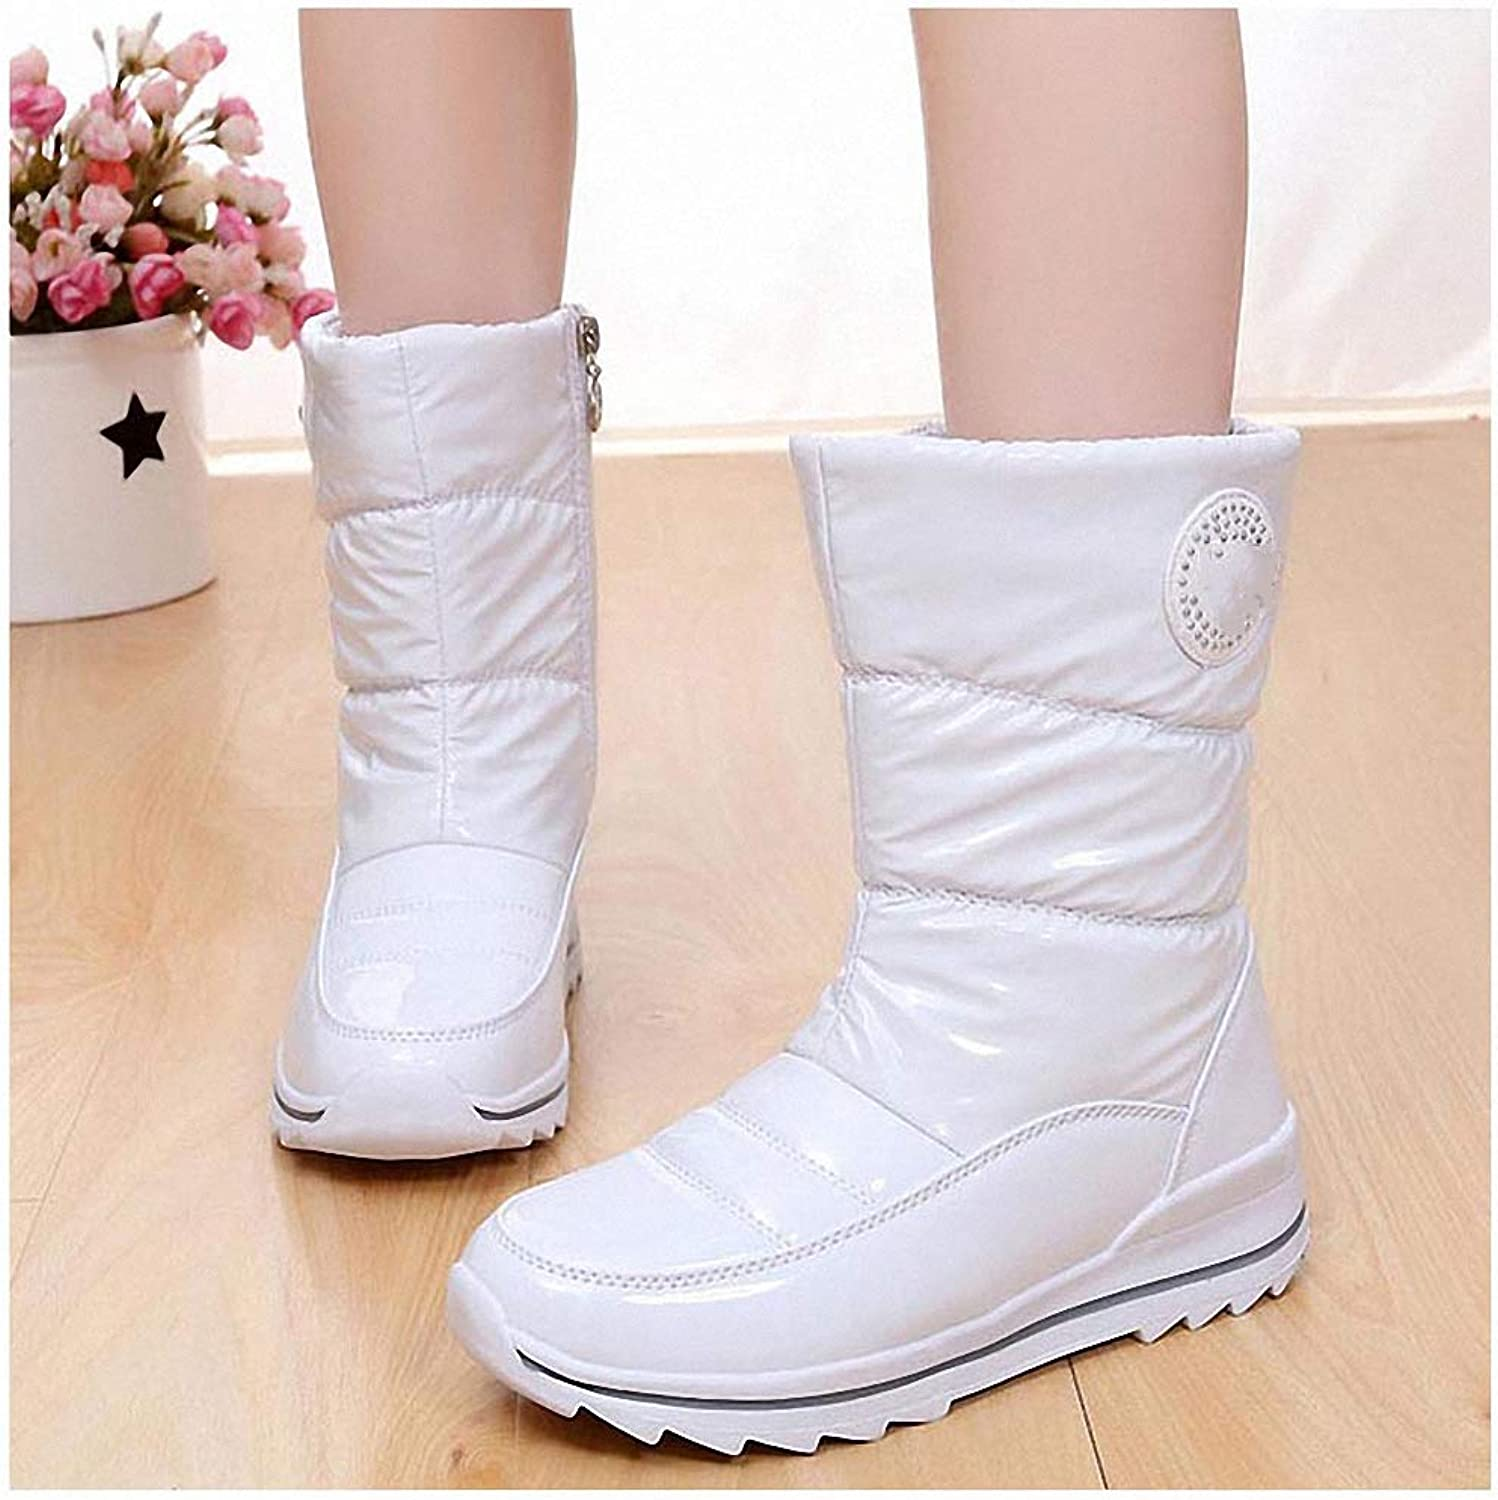 Womens Backpacking Boots Women Boots Waterproof Thick Fur Winter shoes Slip-Resistant Women Platform Snow Boots